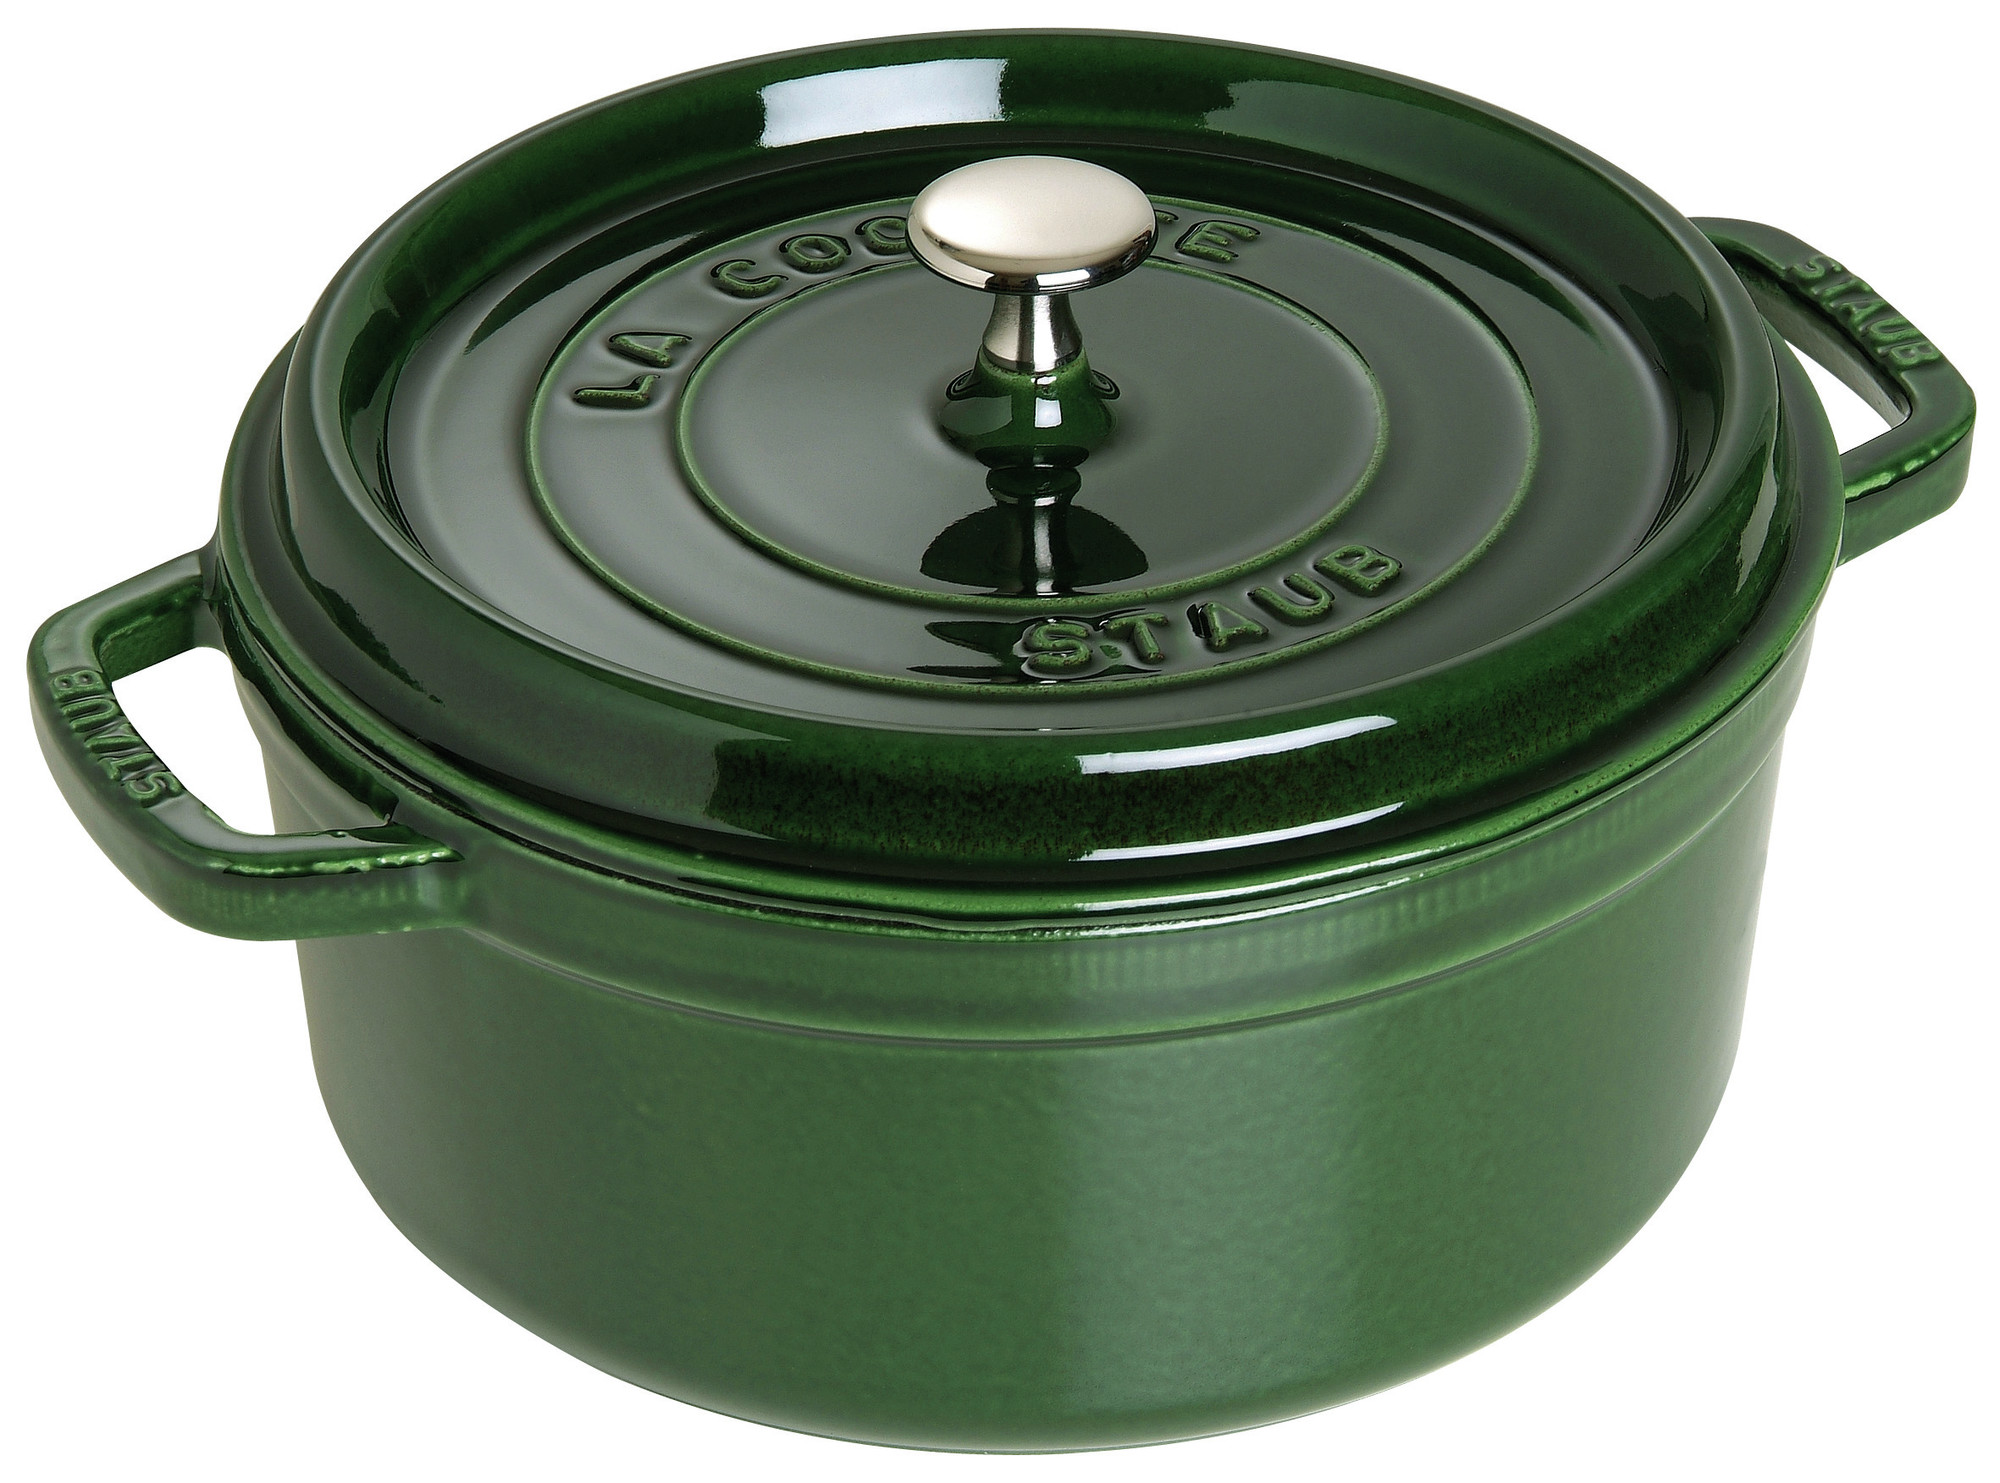 Staub 4-qt. Round Cocotte with Lid